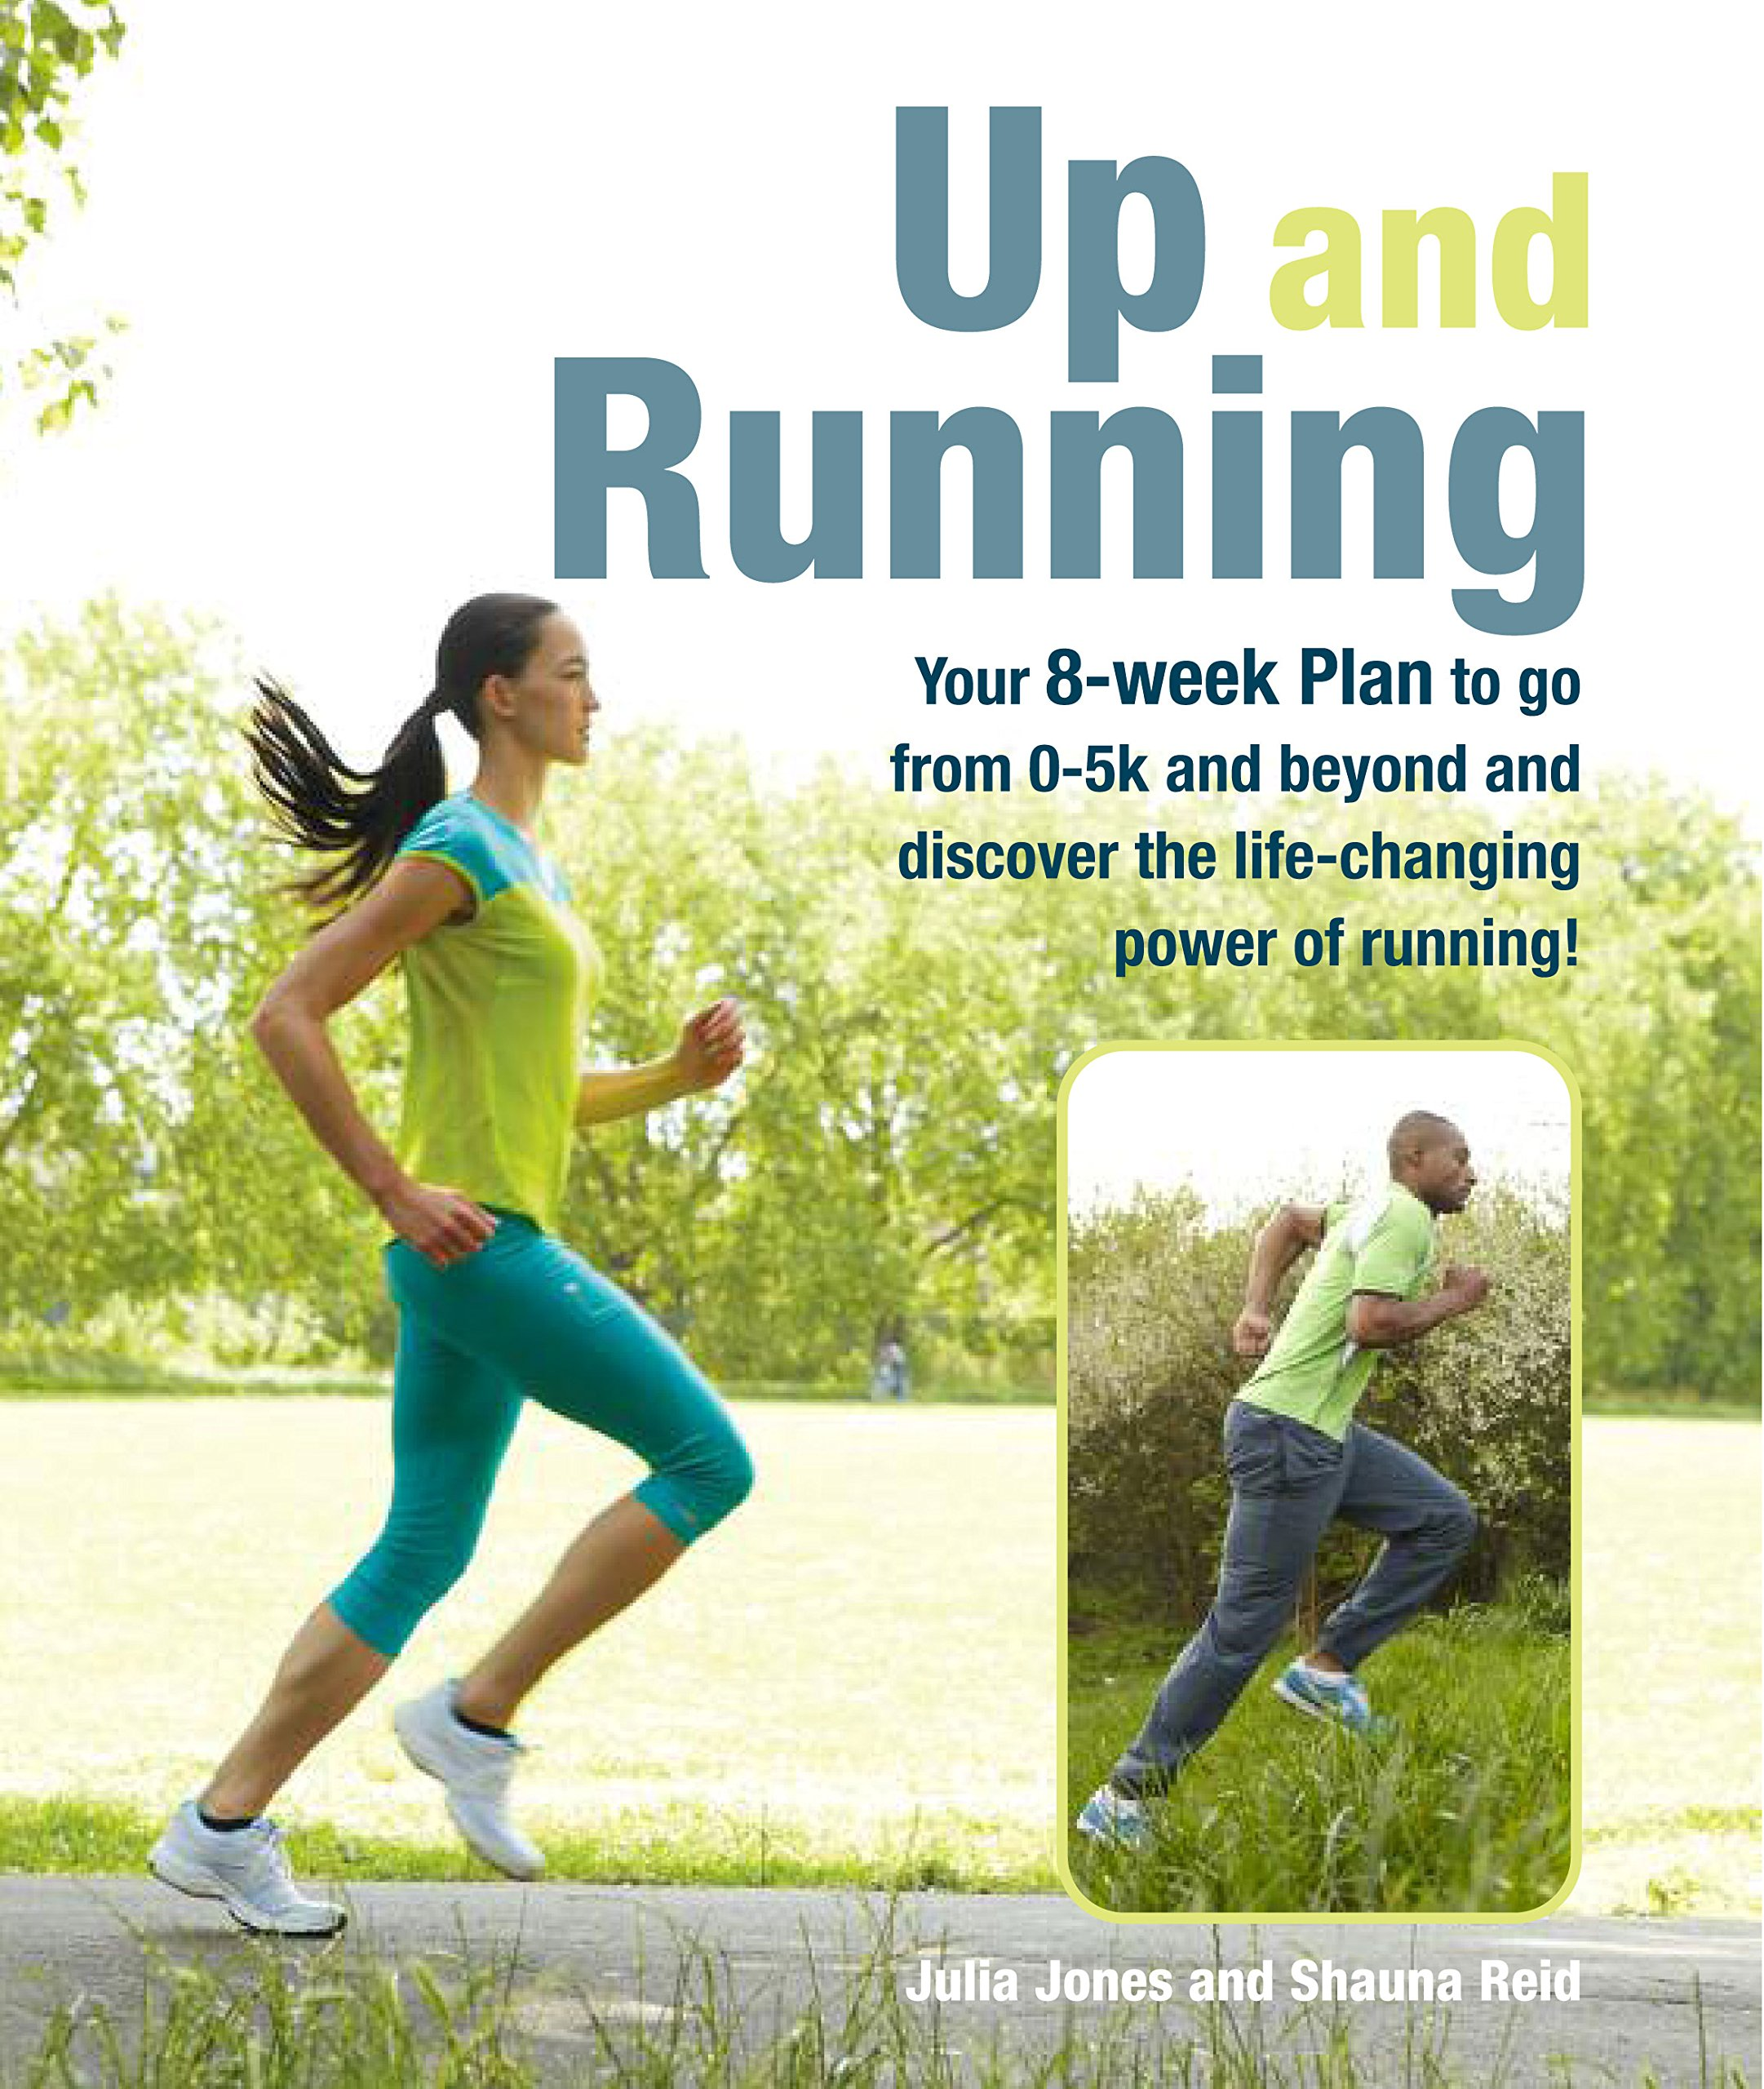 Image OfUp And Running: Your 8-week Plan To Go From 0-5k And Beyond And Discover The Life-changing Power Of Running